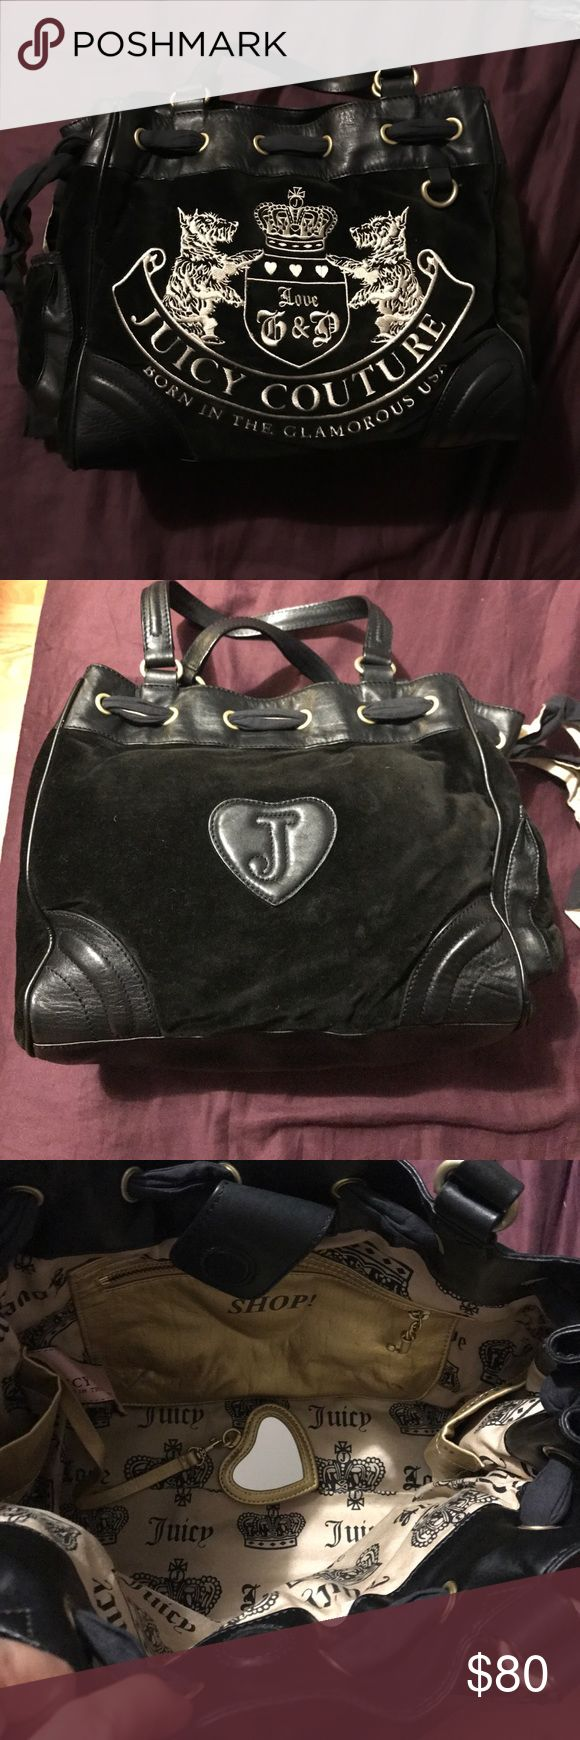 Juicy couture handbag Bag was used for a year. There's a little rip on the bottom as shown on picture. Juicy Couture Bags Shoulder Bags